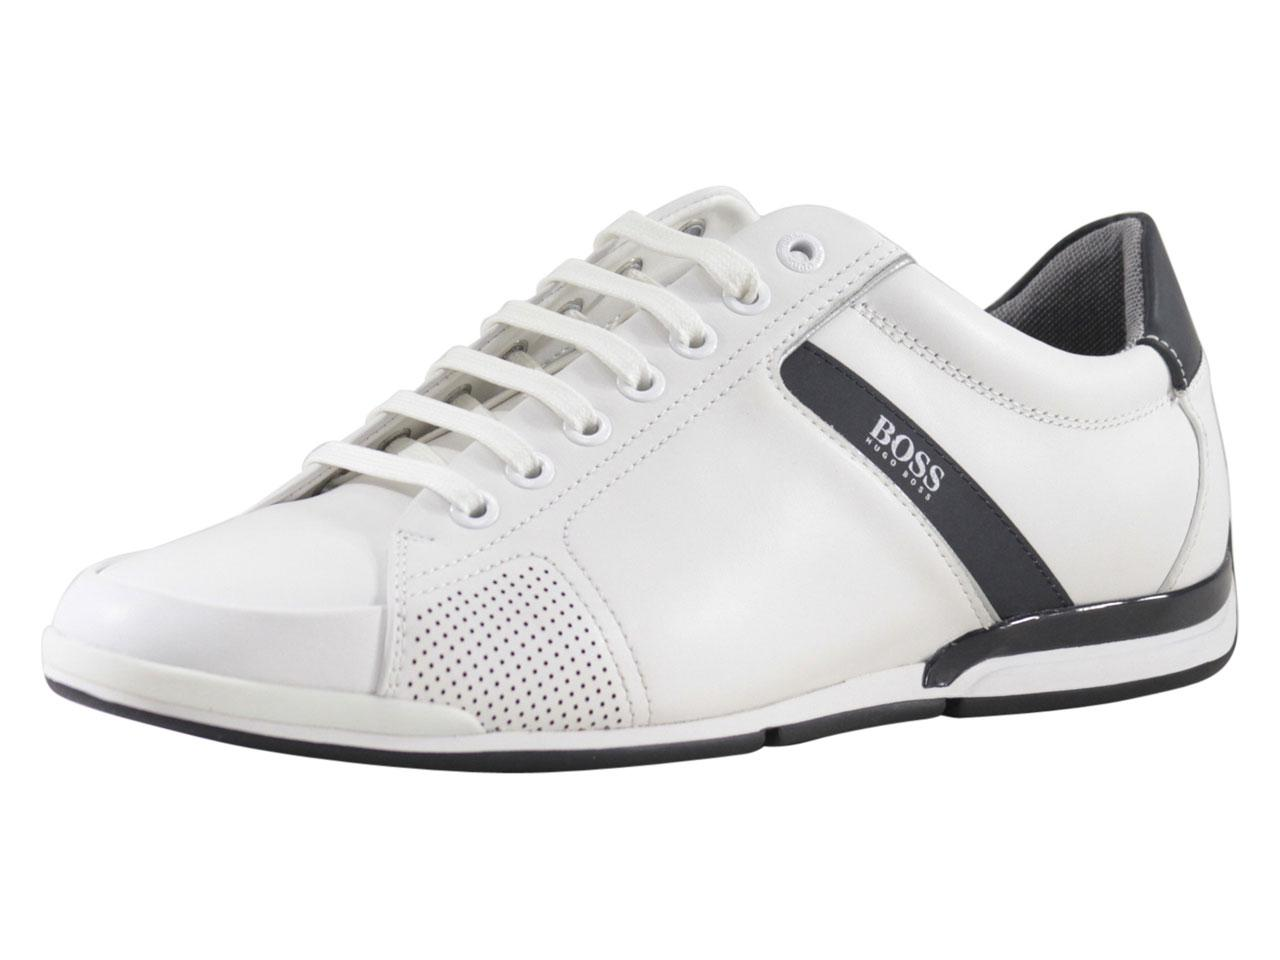 Saturn White Sneakers Shoes Sz: 12